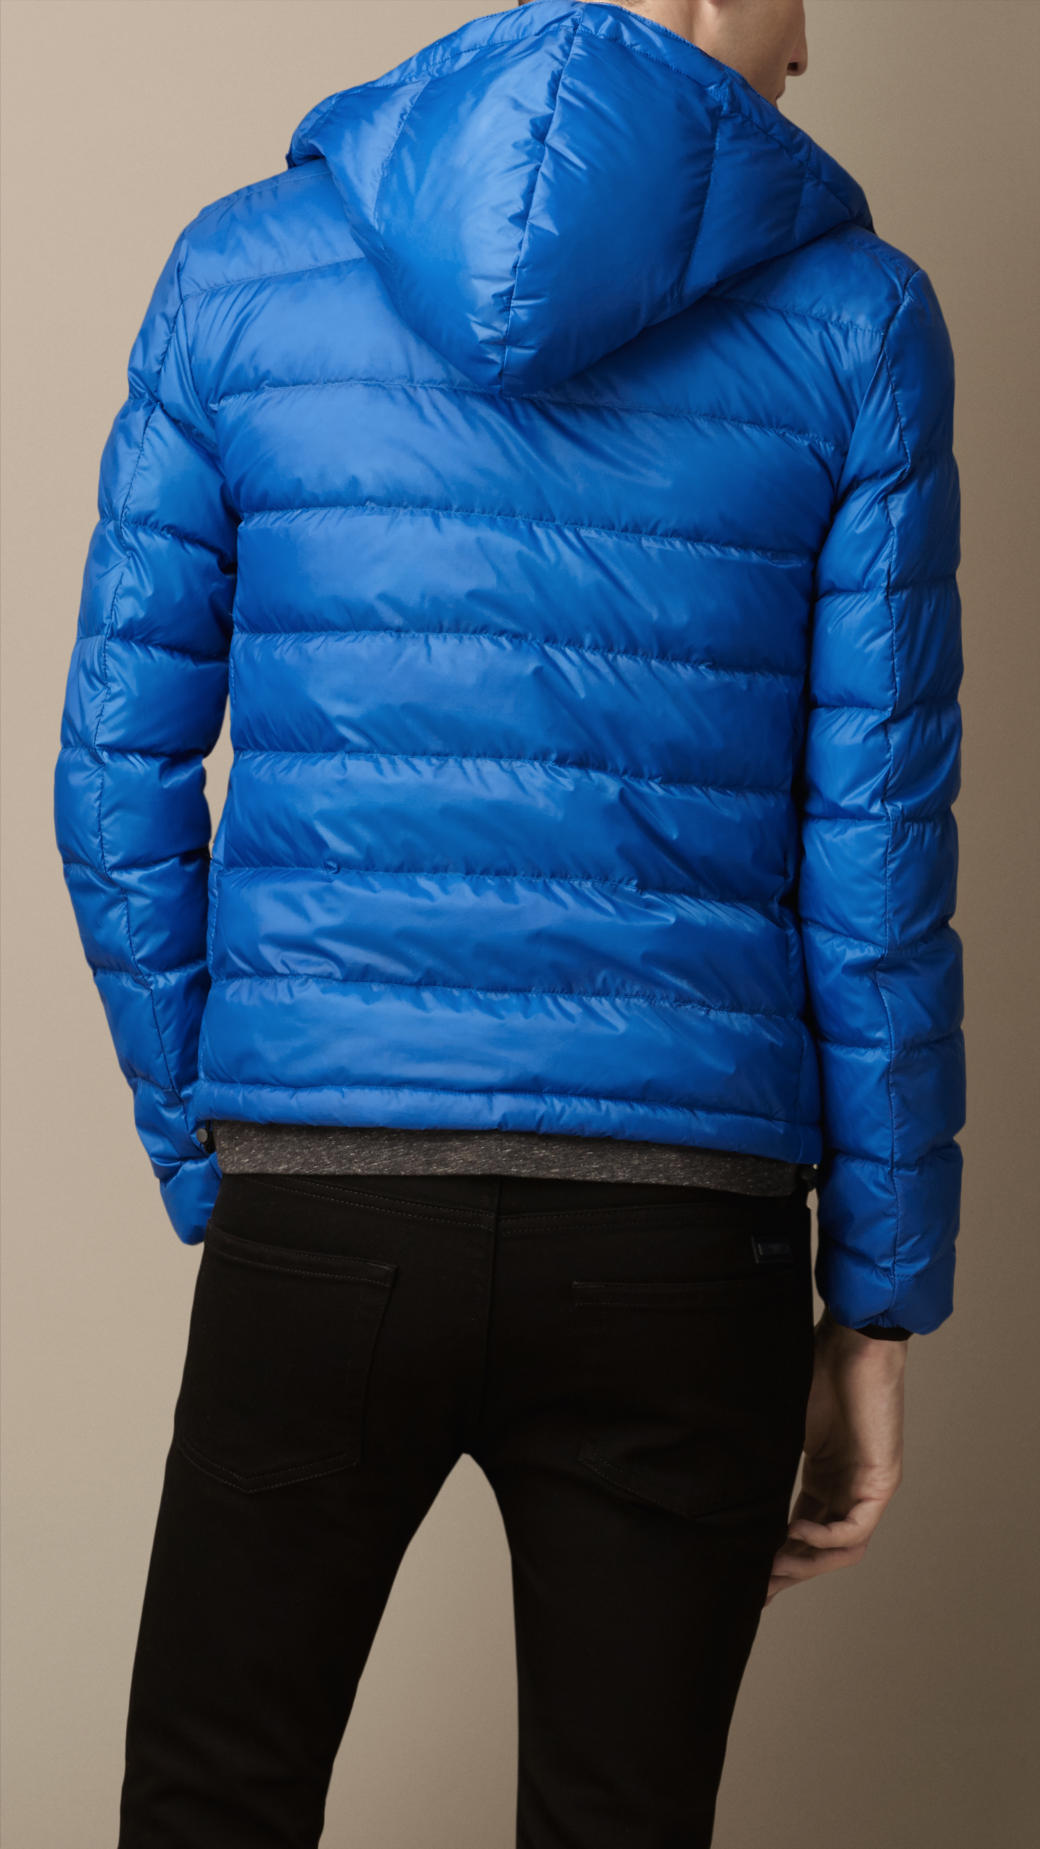 Burberry Down-Filled Puffer Jacket in Blue for Men